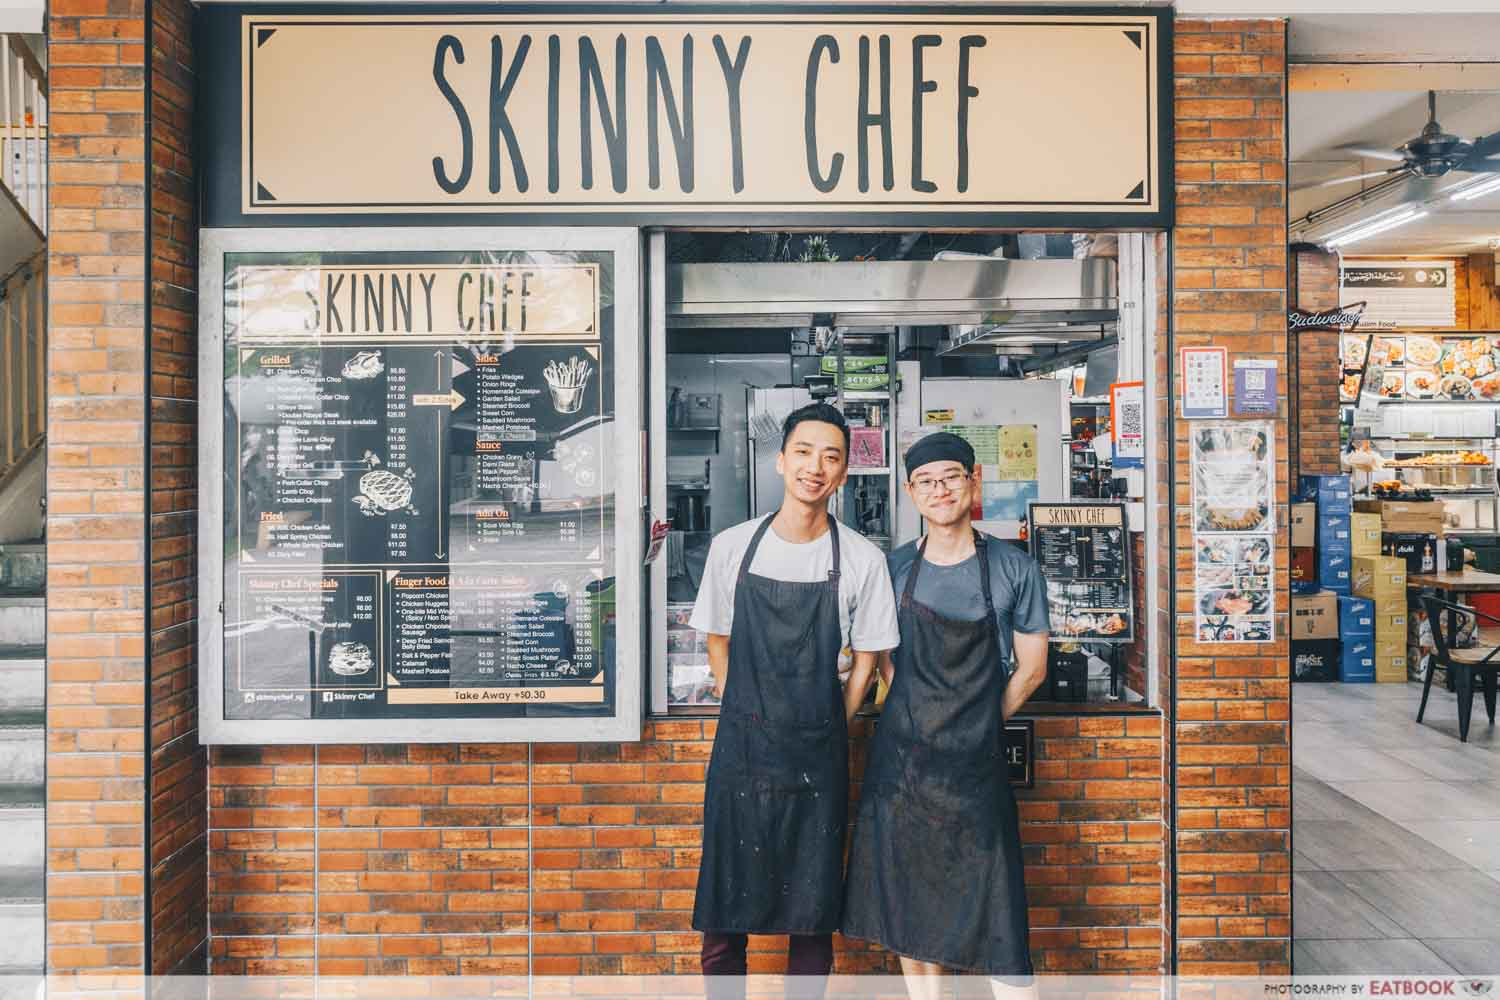 Skinny Chef - Storefront with owners